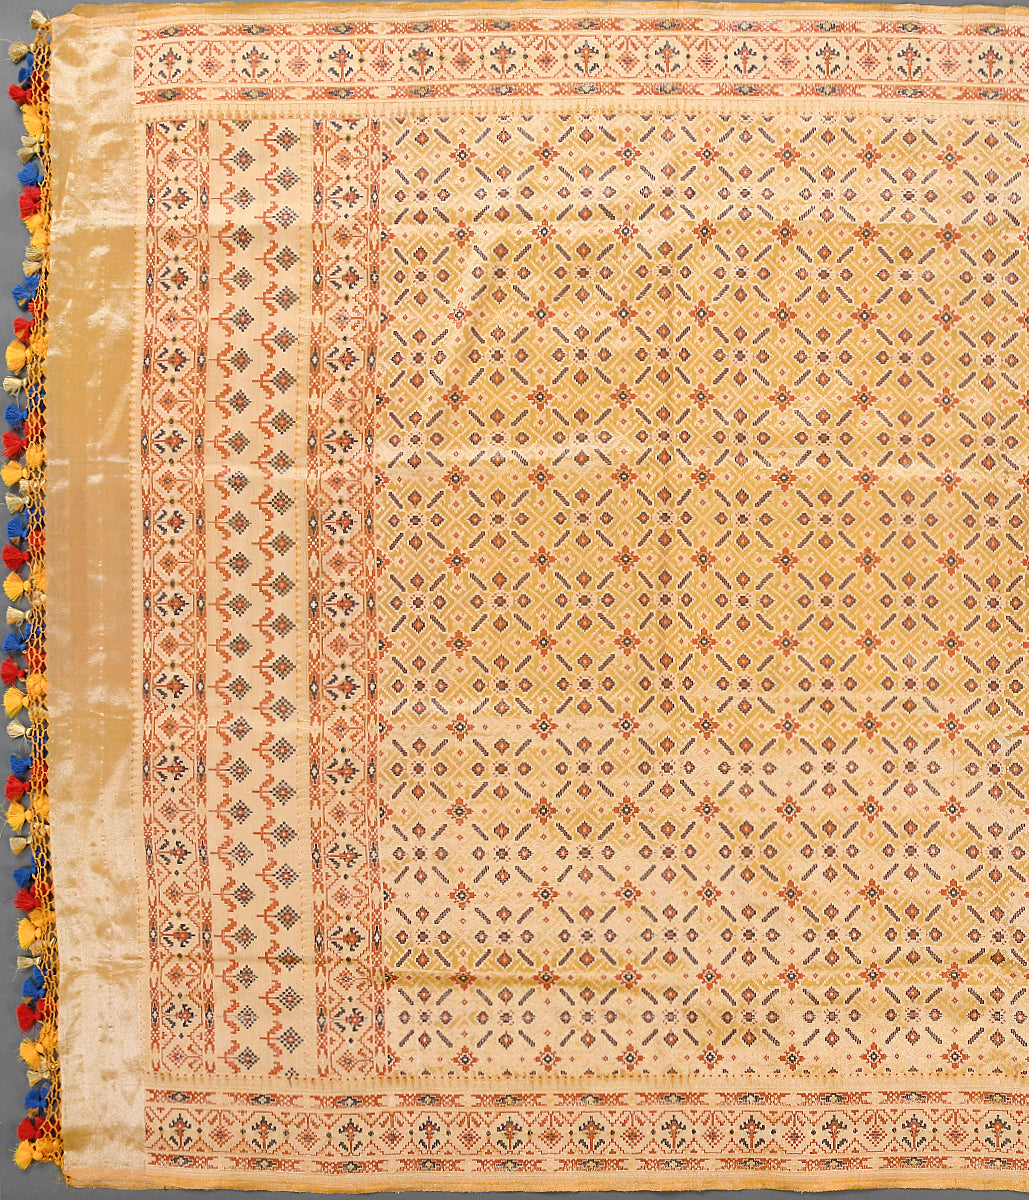 Handwoven Yellow Tissue Patola Dupatta